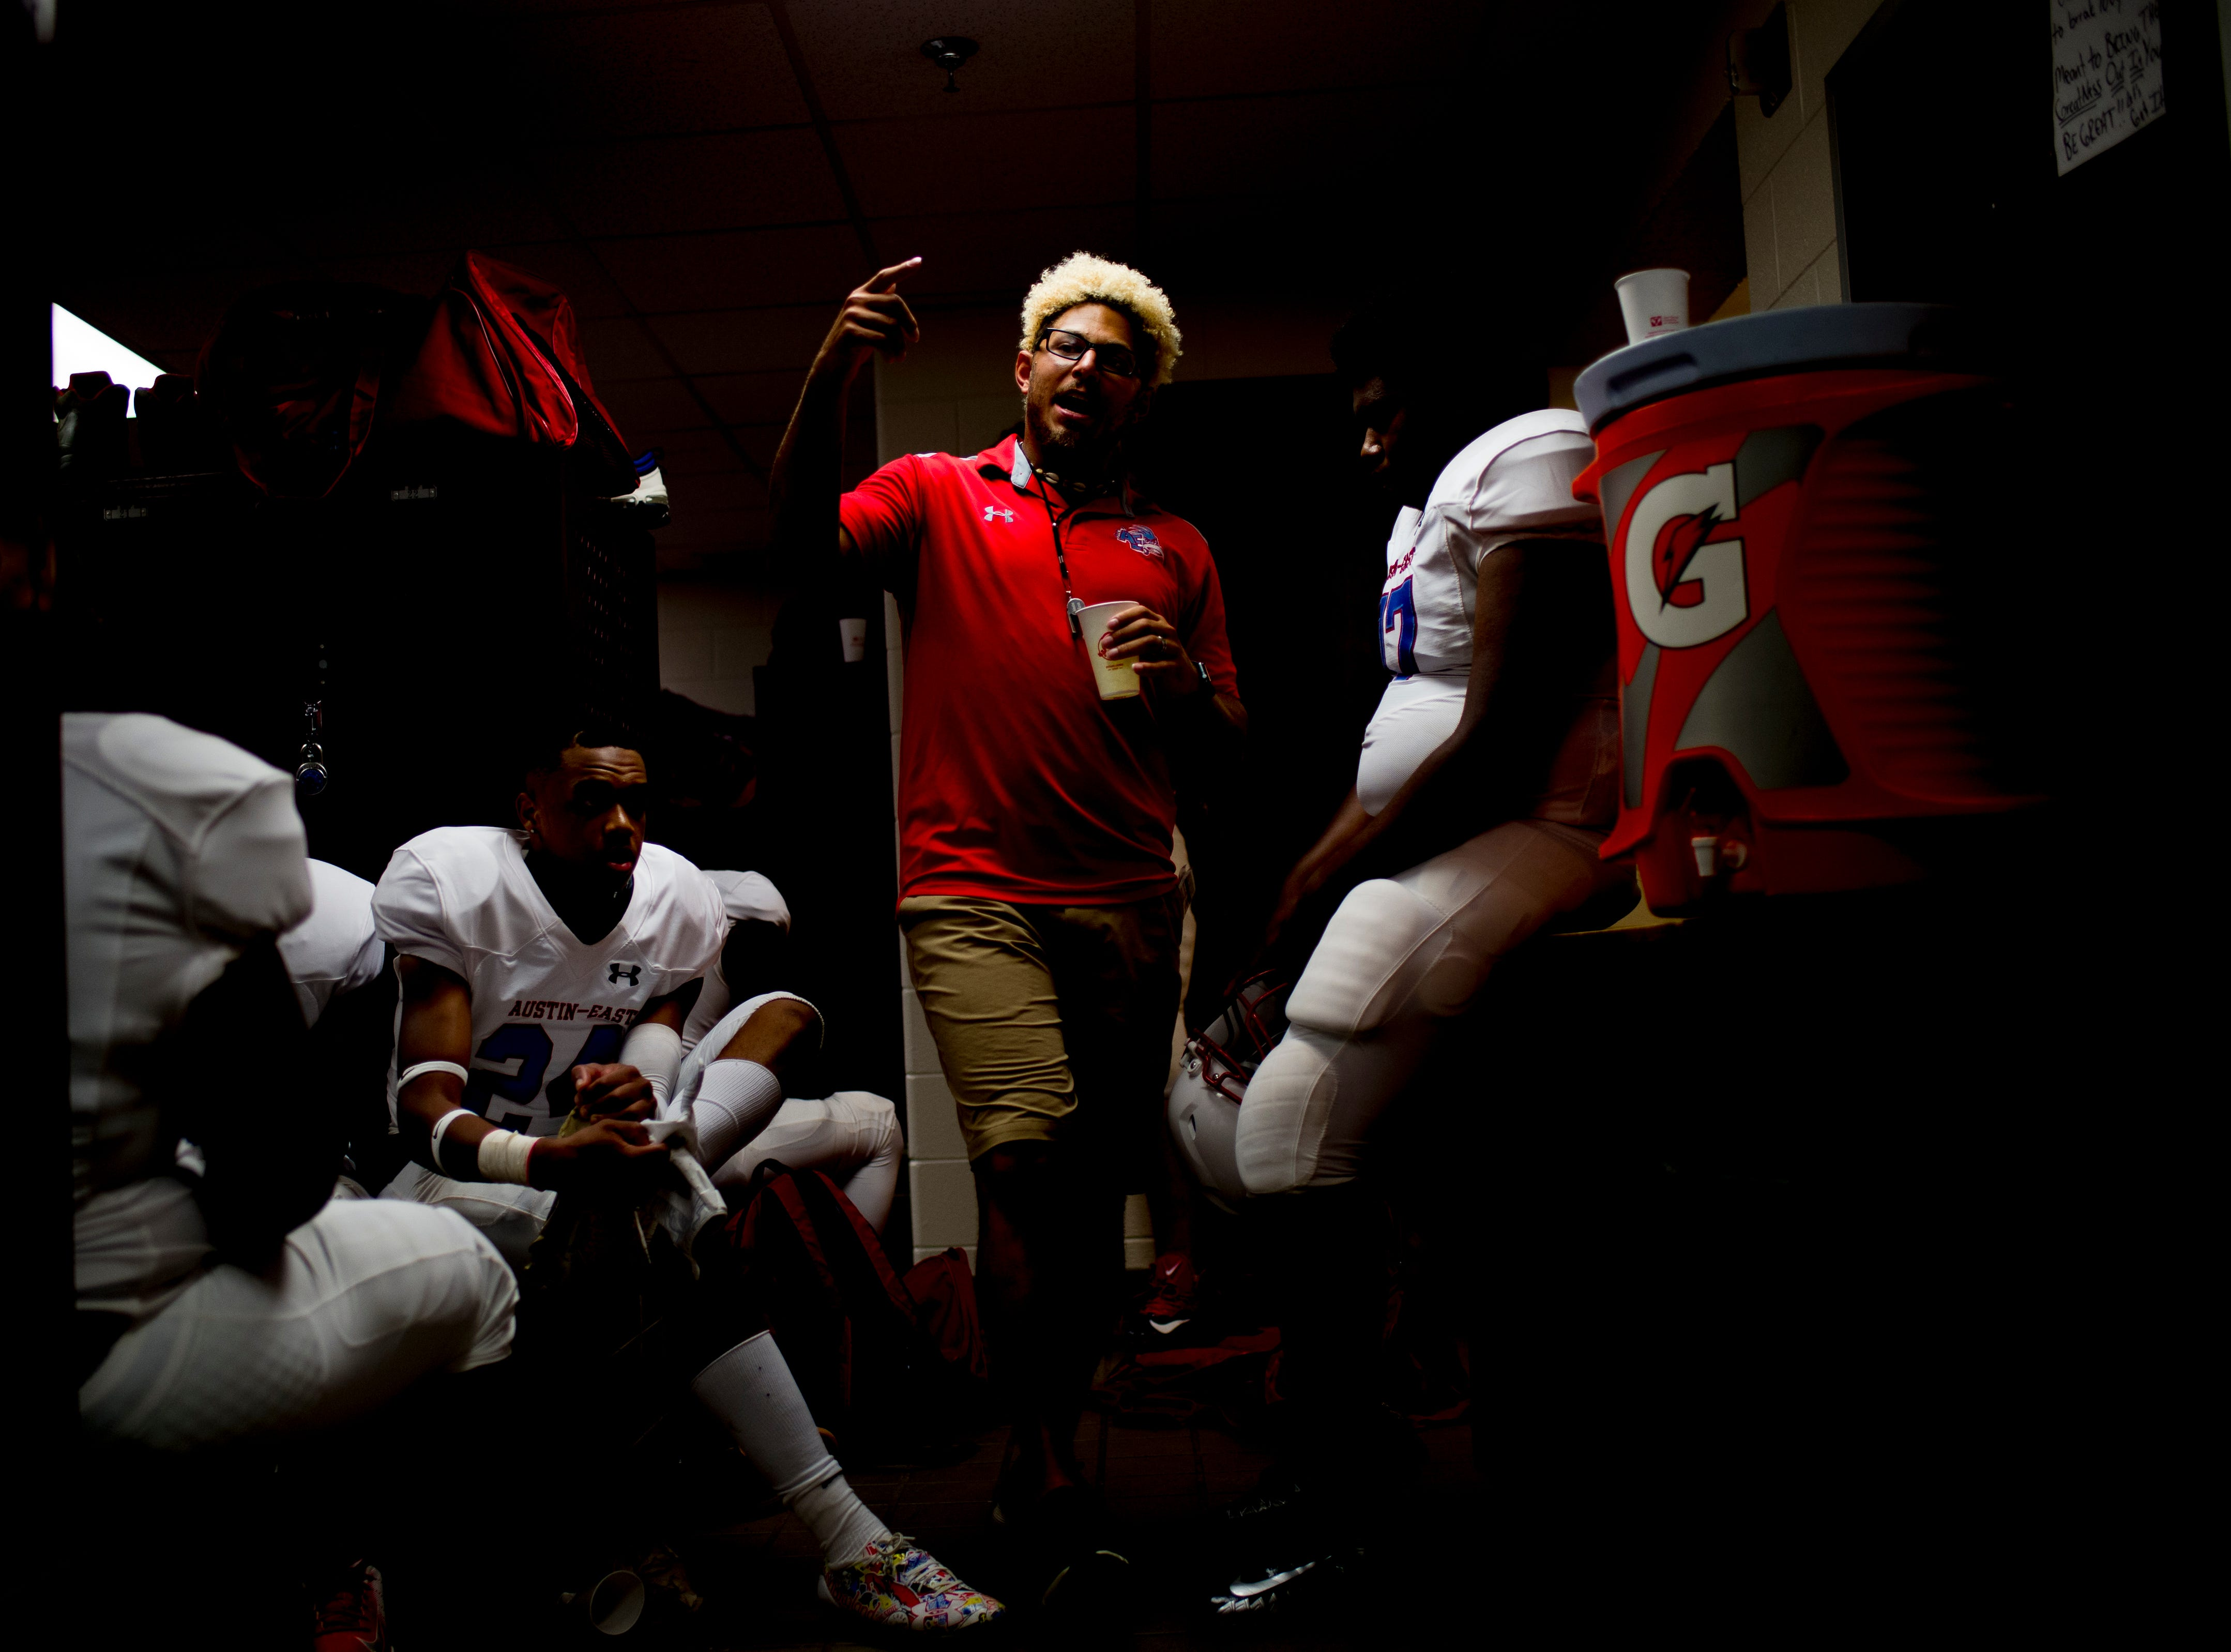 Austin-East Head Coach Jeff Phillips gives a locker room speech before a football game against Fulton at Fulton High School in Knoxville, Tennessee on Friday, September 7, 2018.